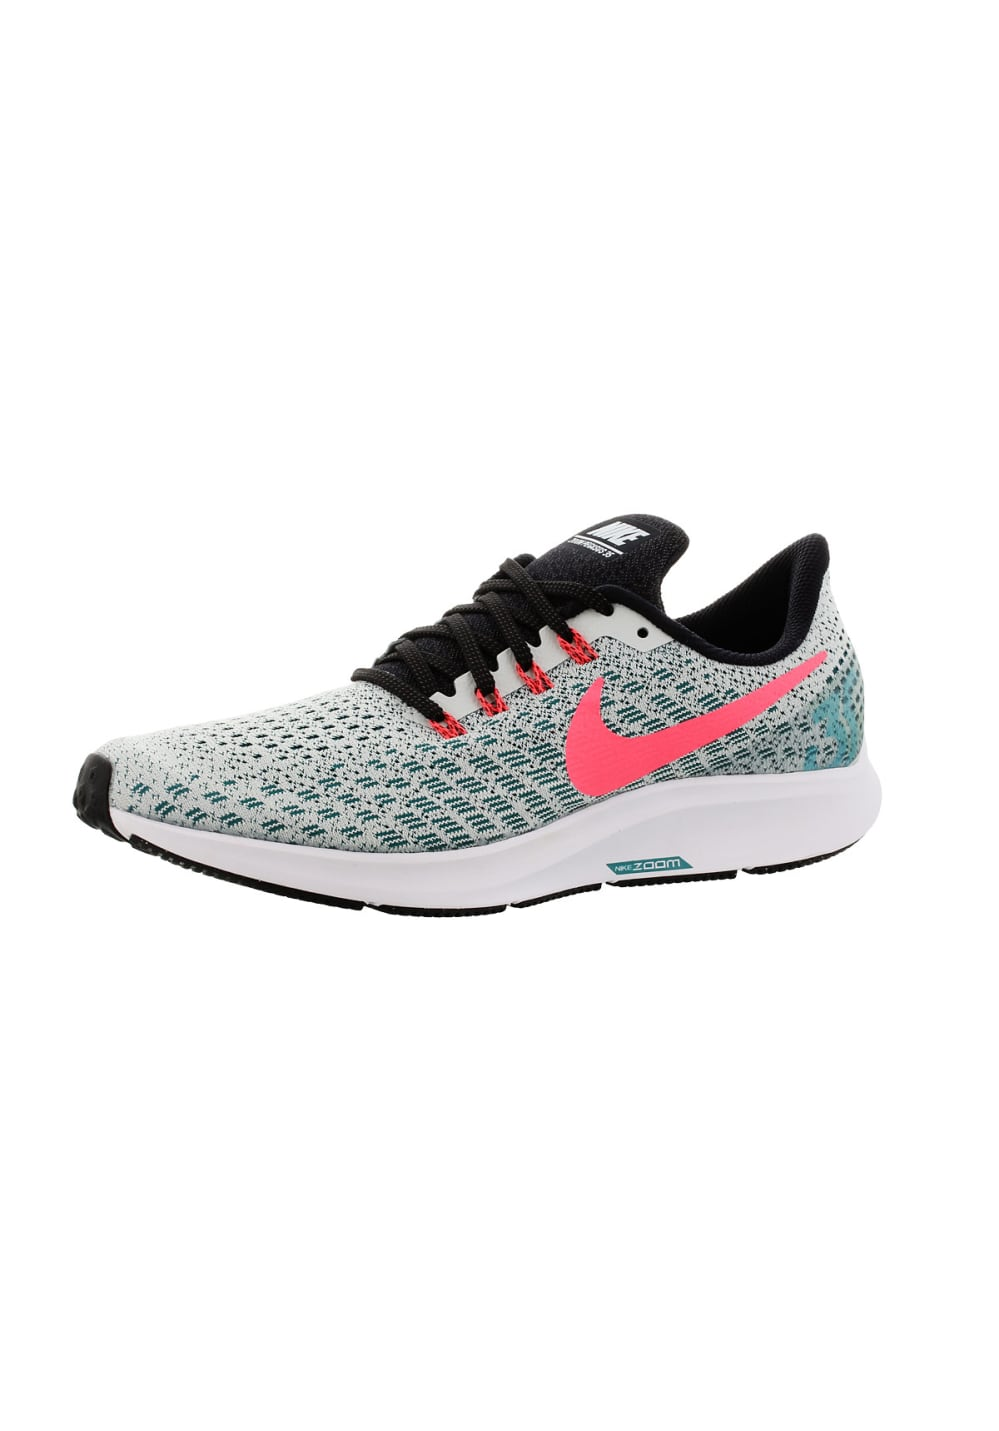 hot sales f942e 8b79b Nike Air Zoom Pegasus 35 - Running shoes for Men - Grey